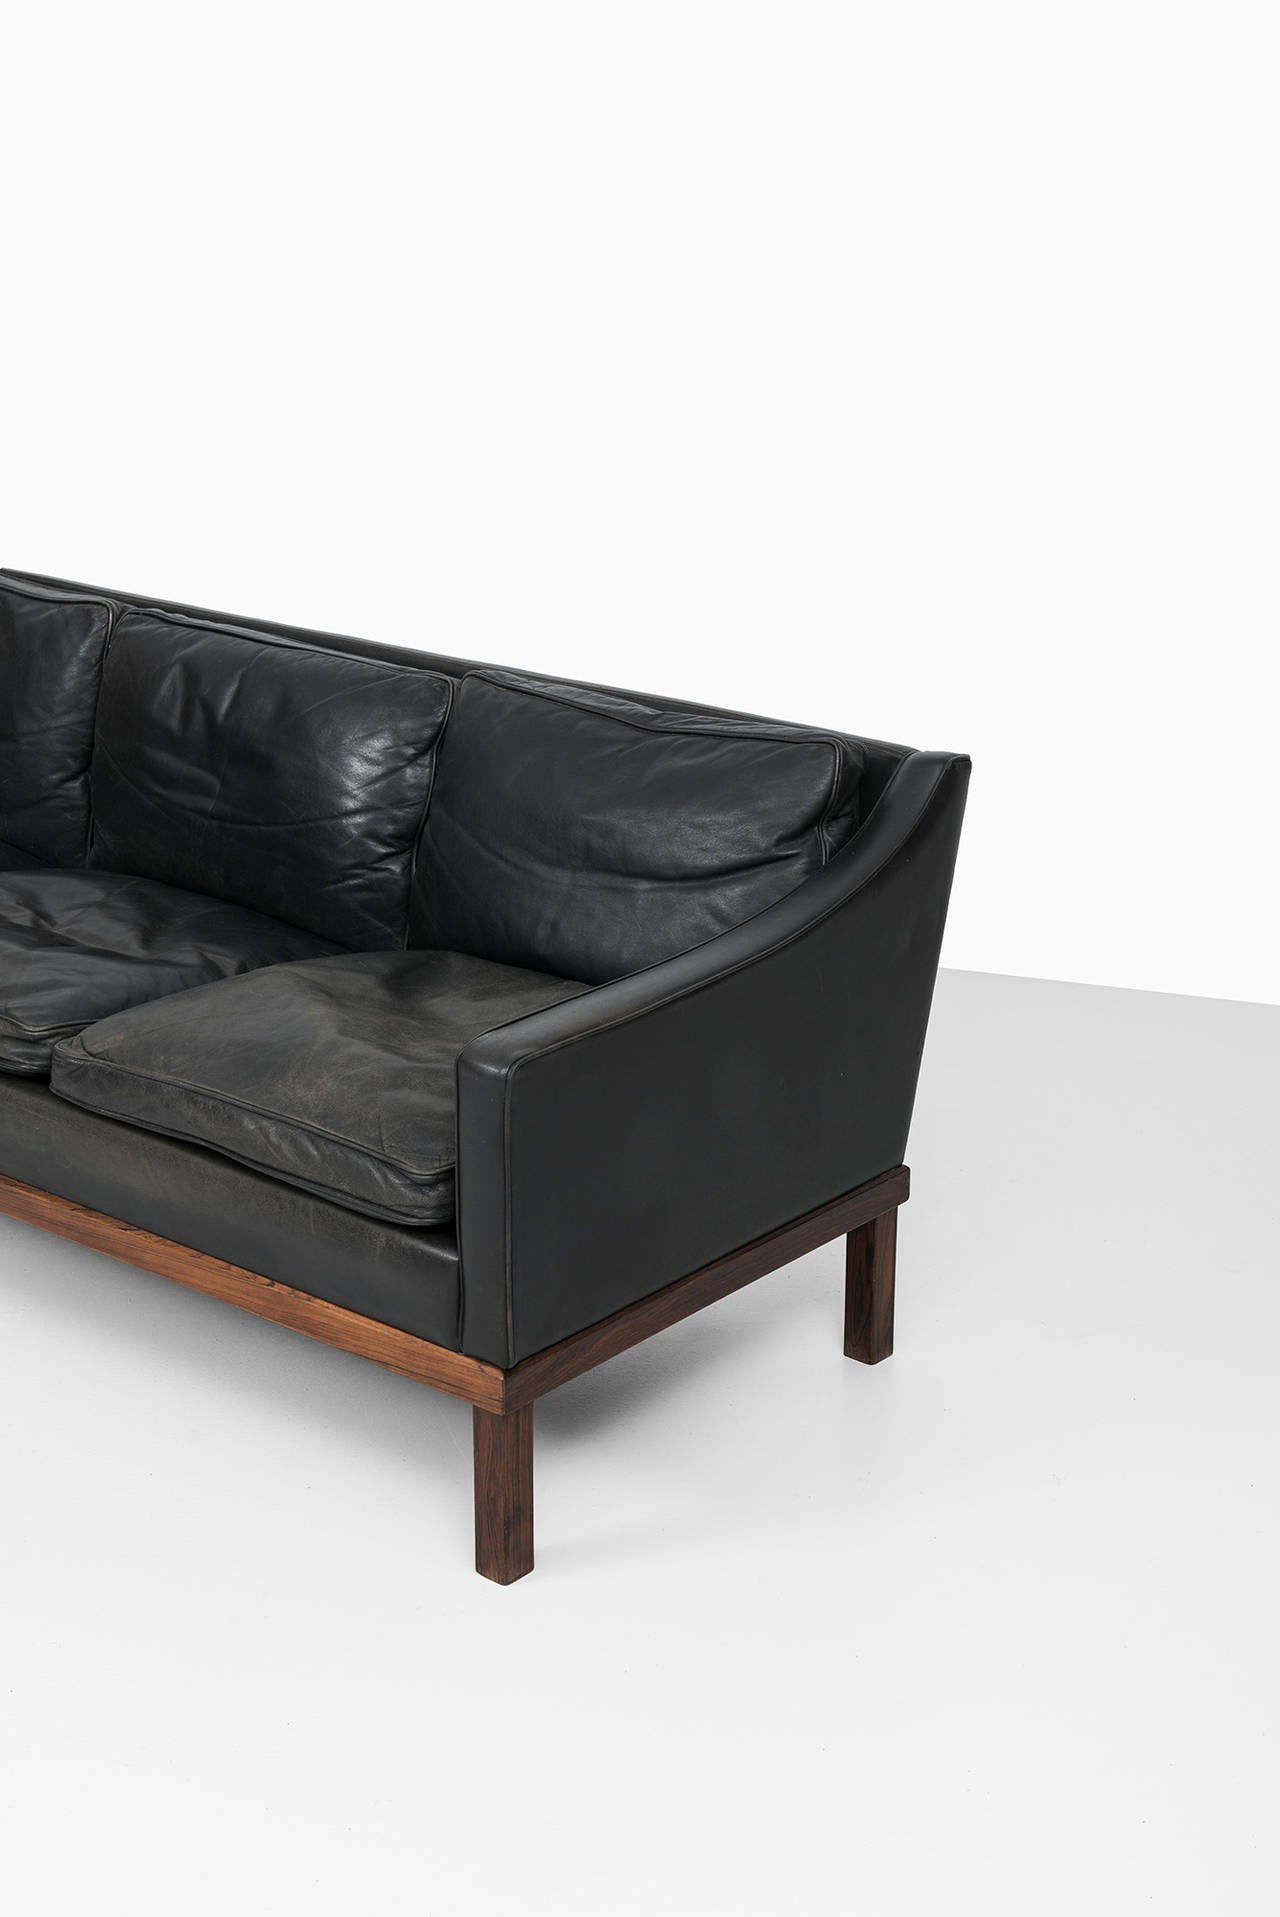 Leather Ib Kofod-Larsen leather sofa by OPE in Sweden For Sale